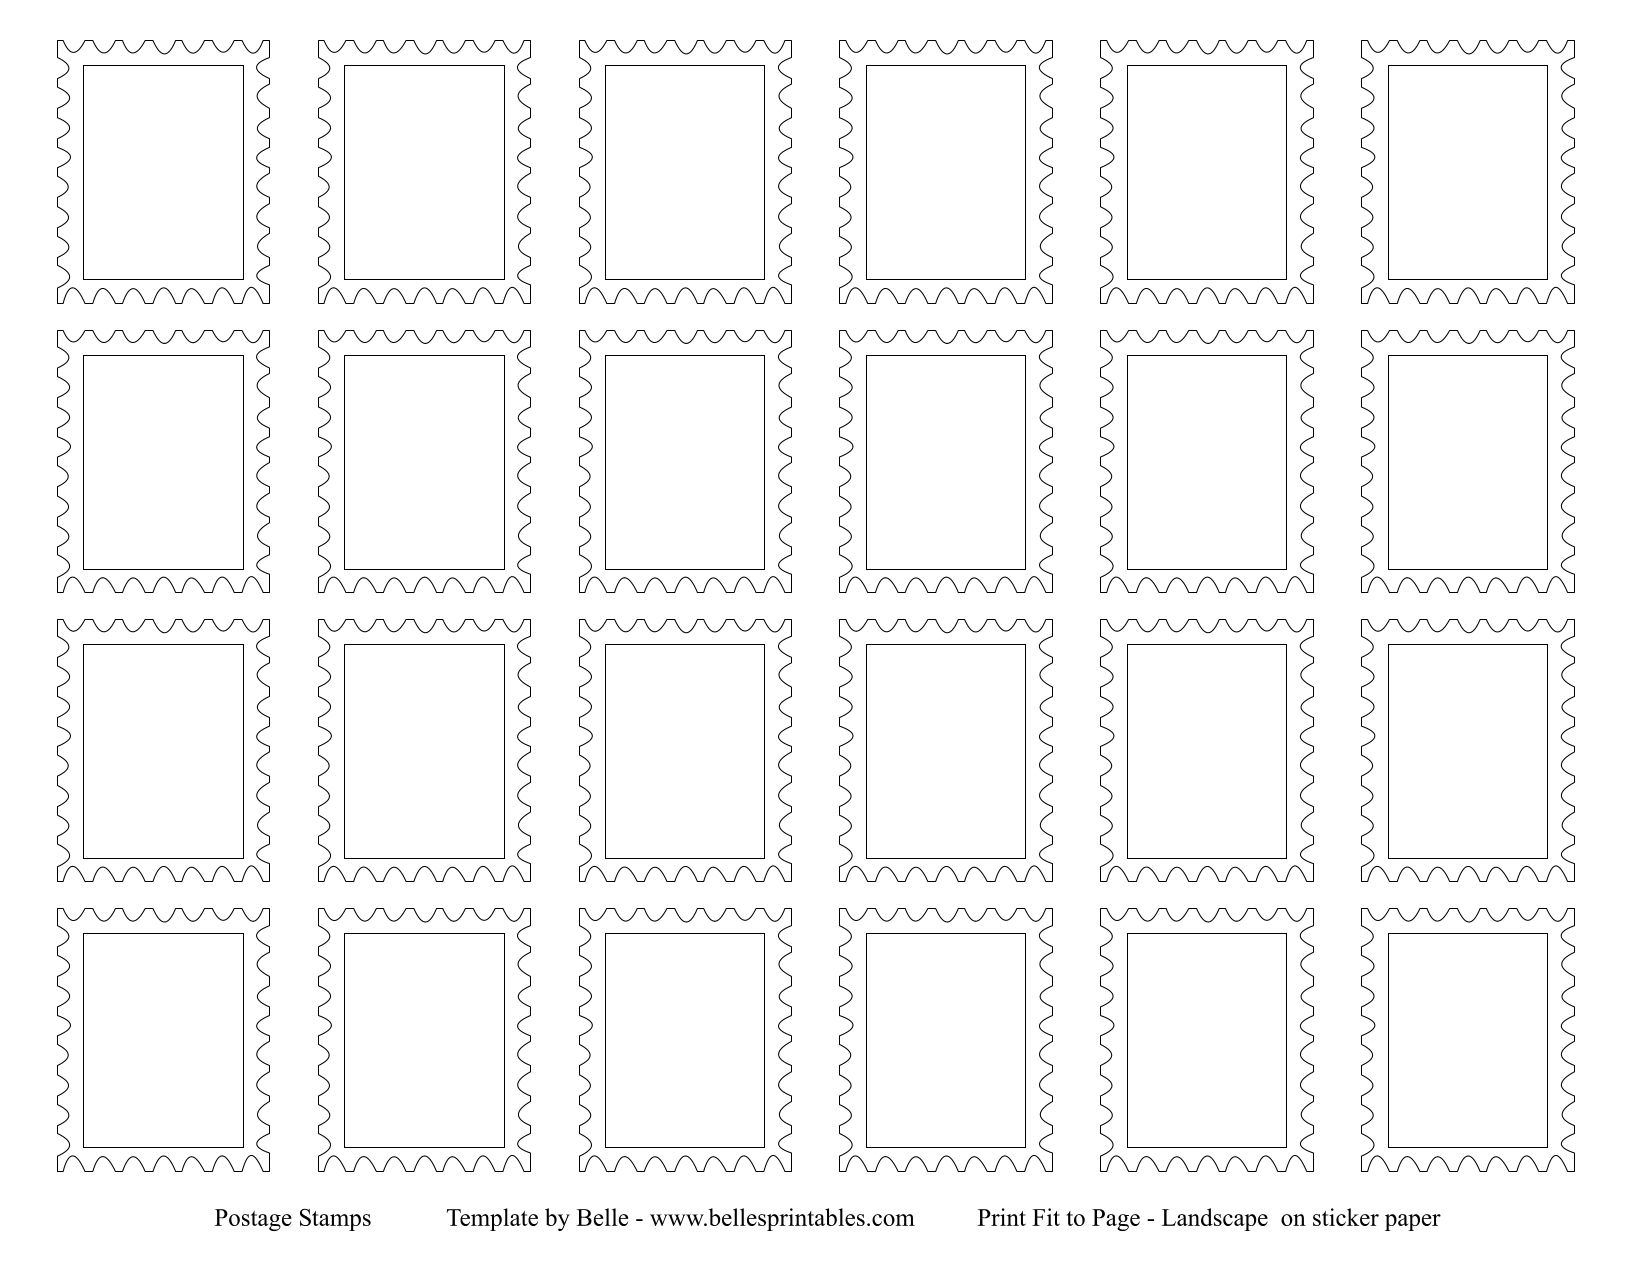 Postage Stamps Template For Dramatic Play/Post Office